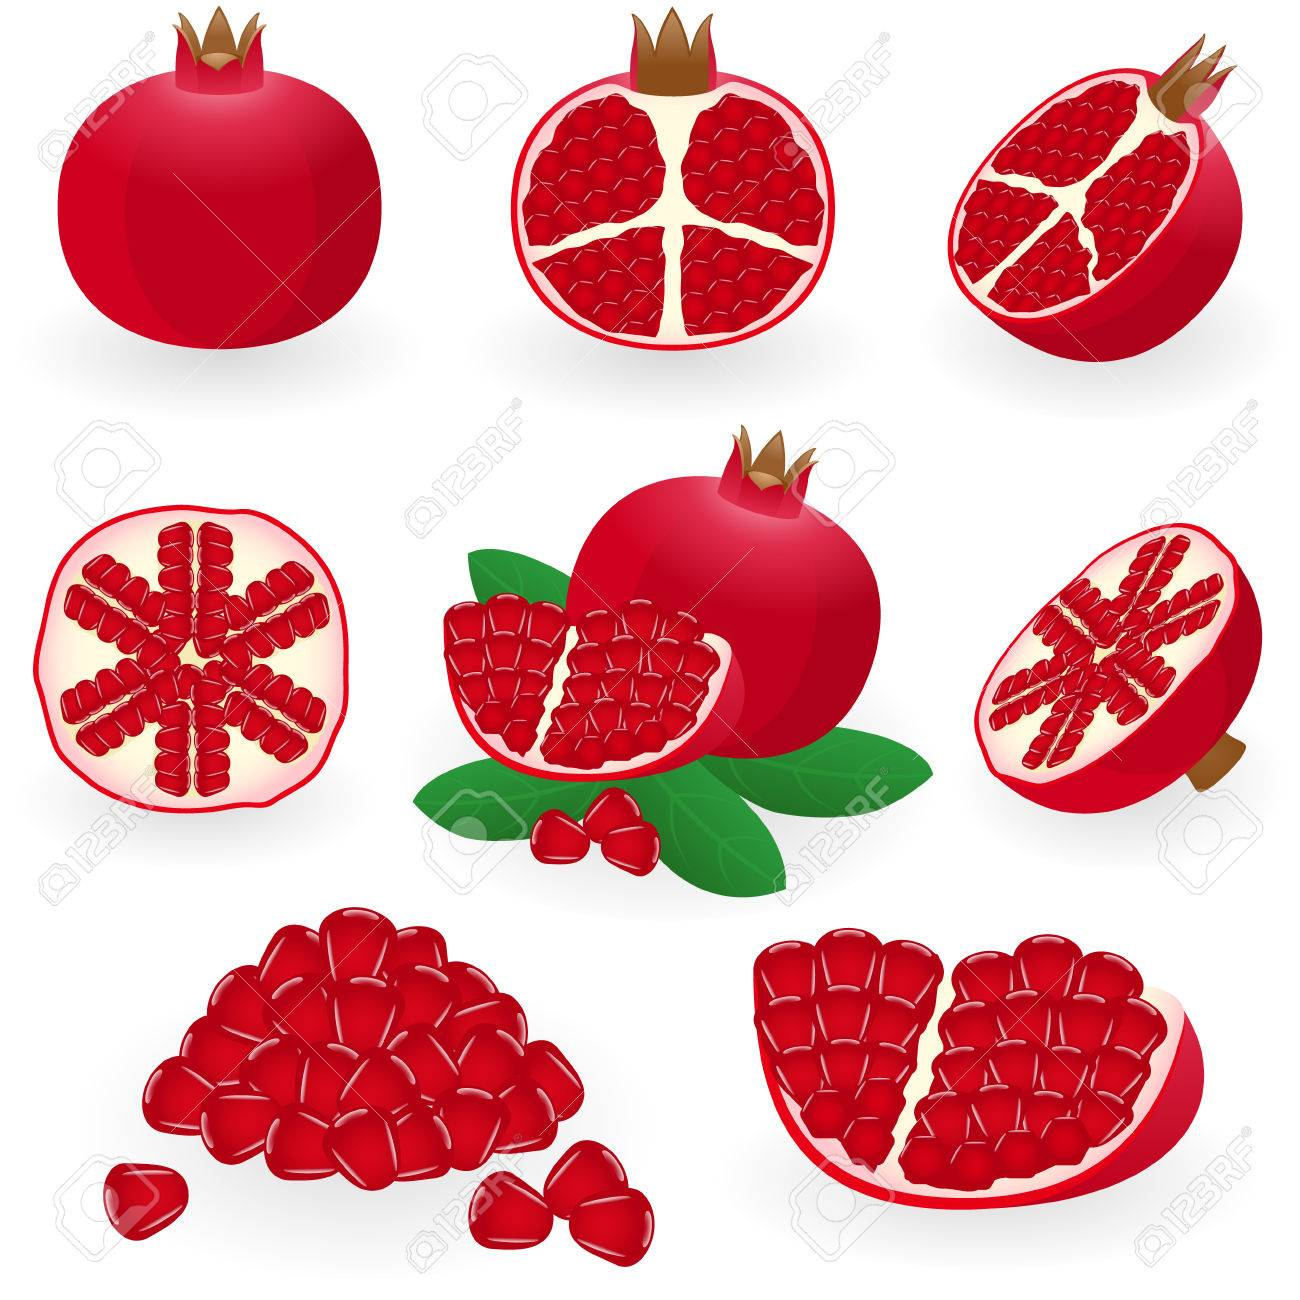 illustration of pomegranate Stock Vector - 6294536